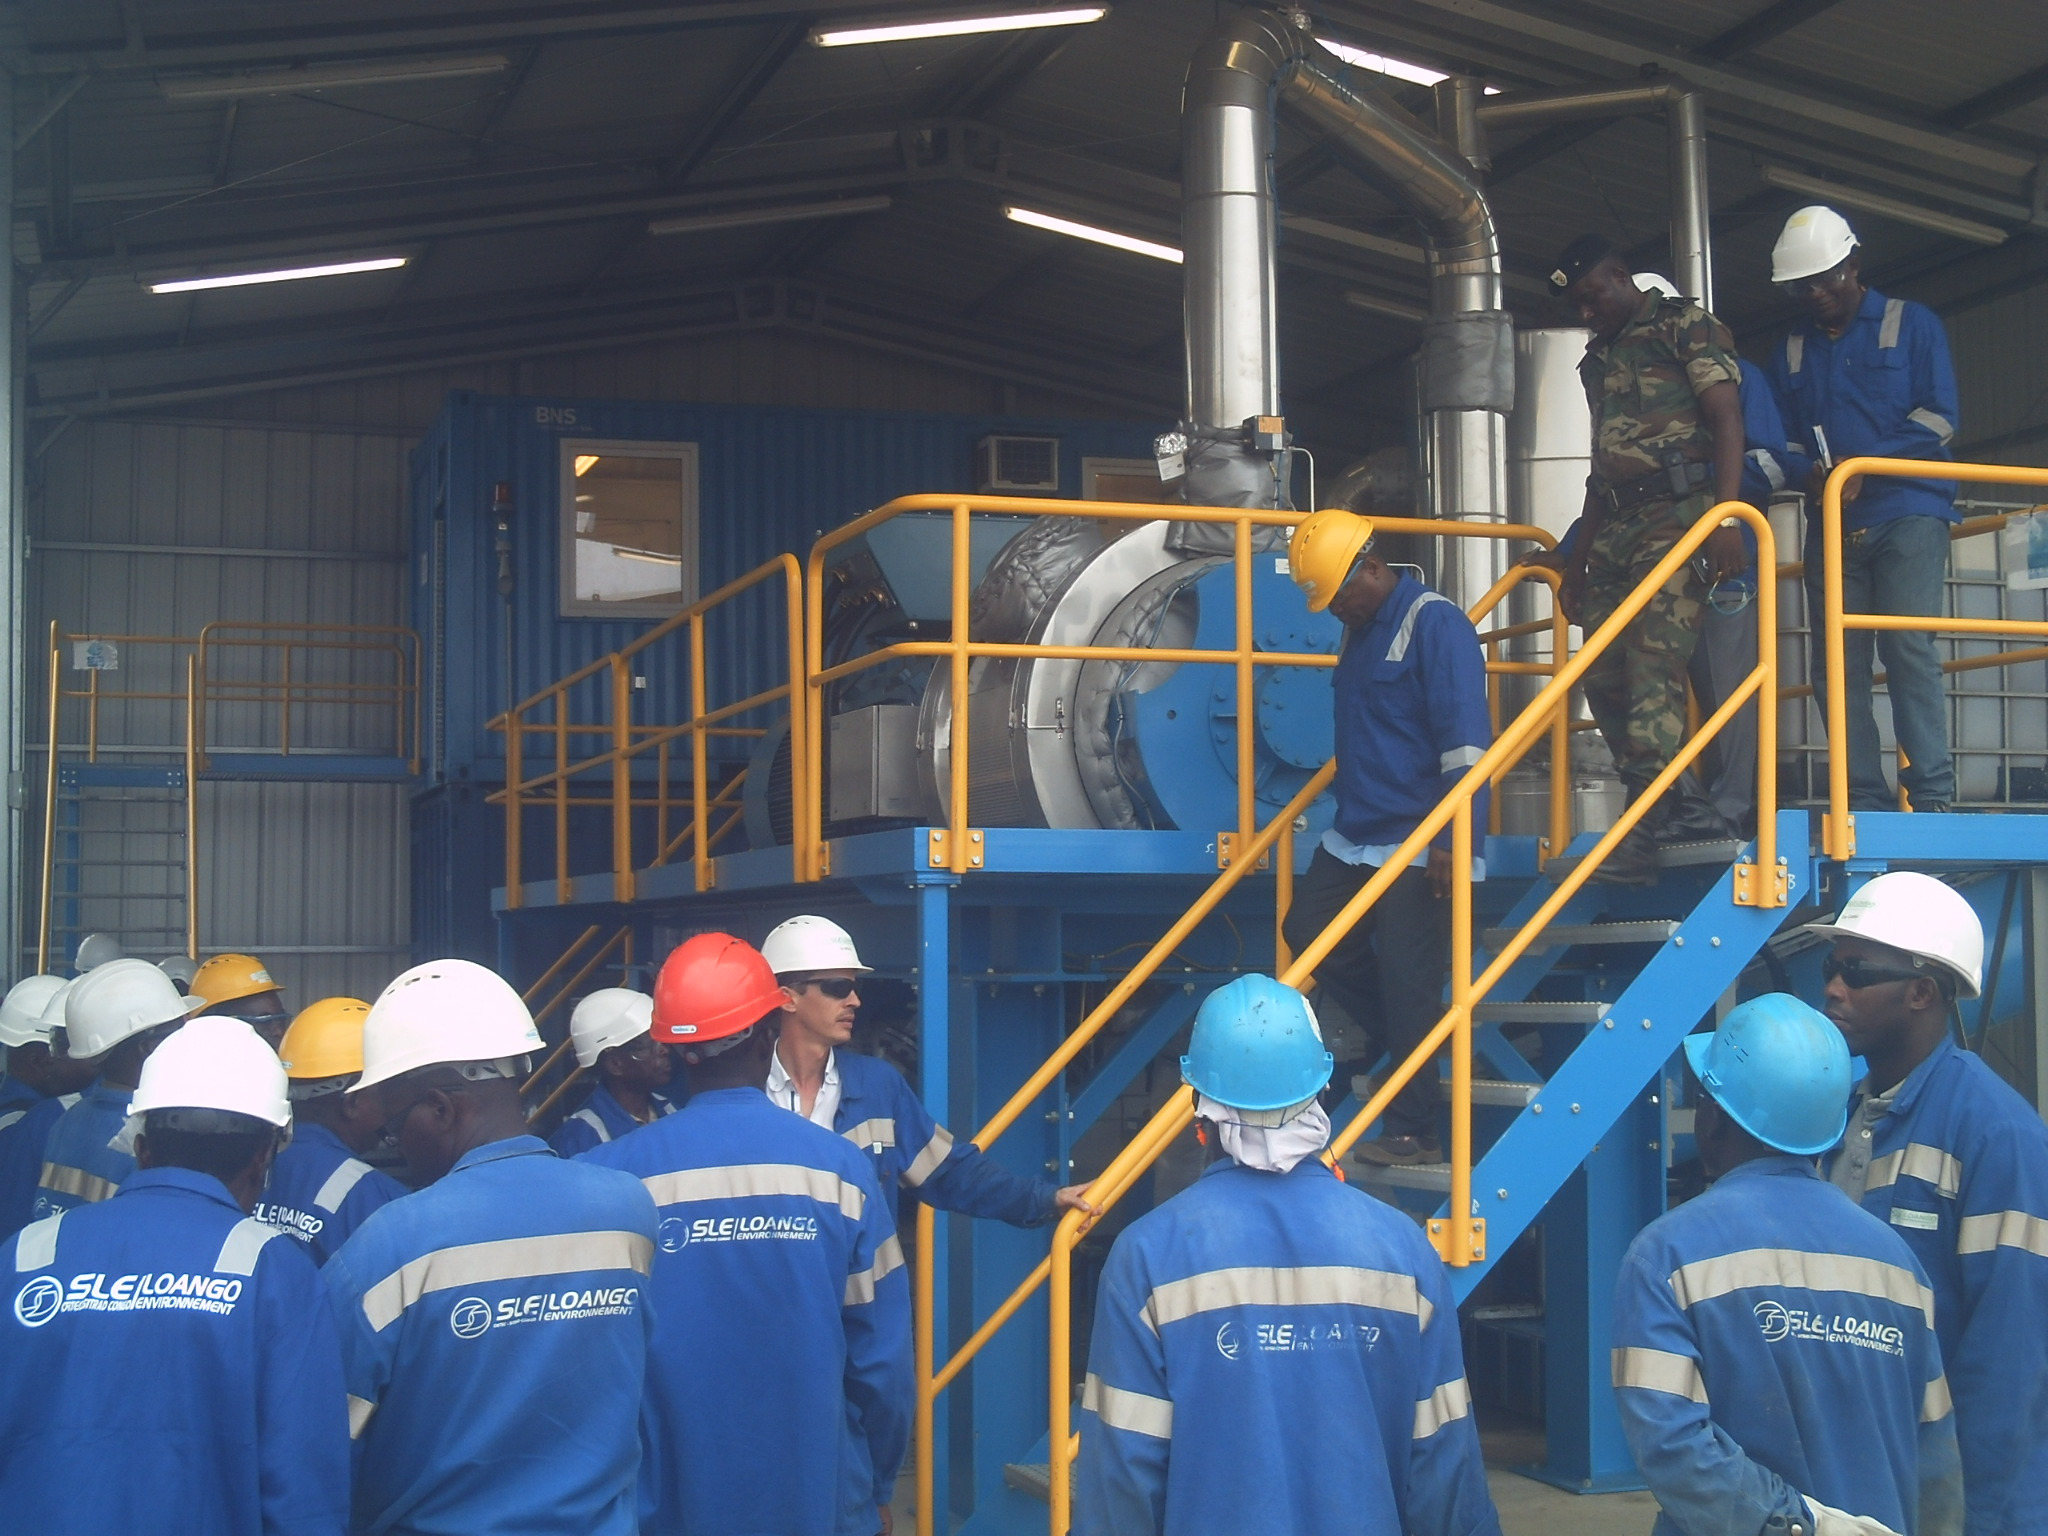 recyclagecentra-opslaghal-industriebouw-congo